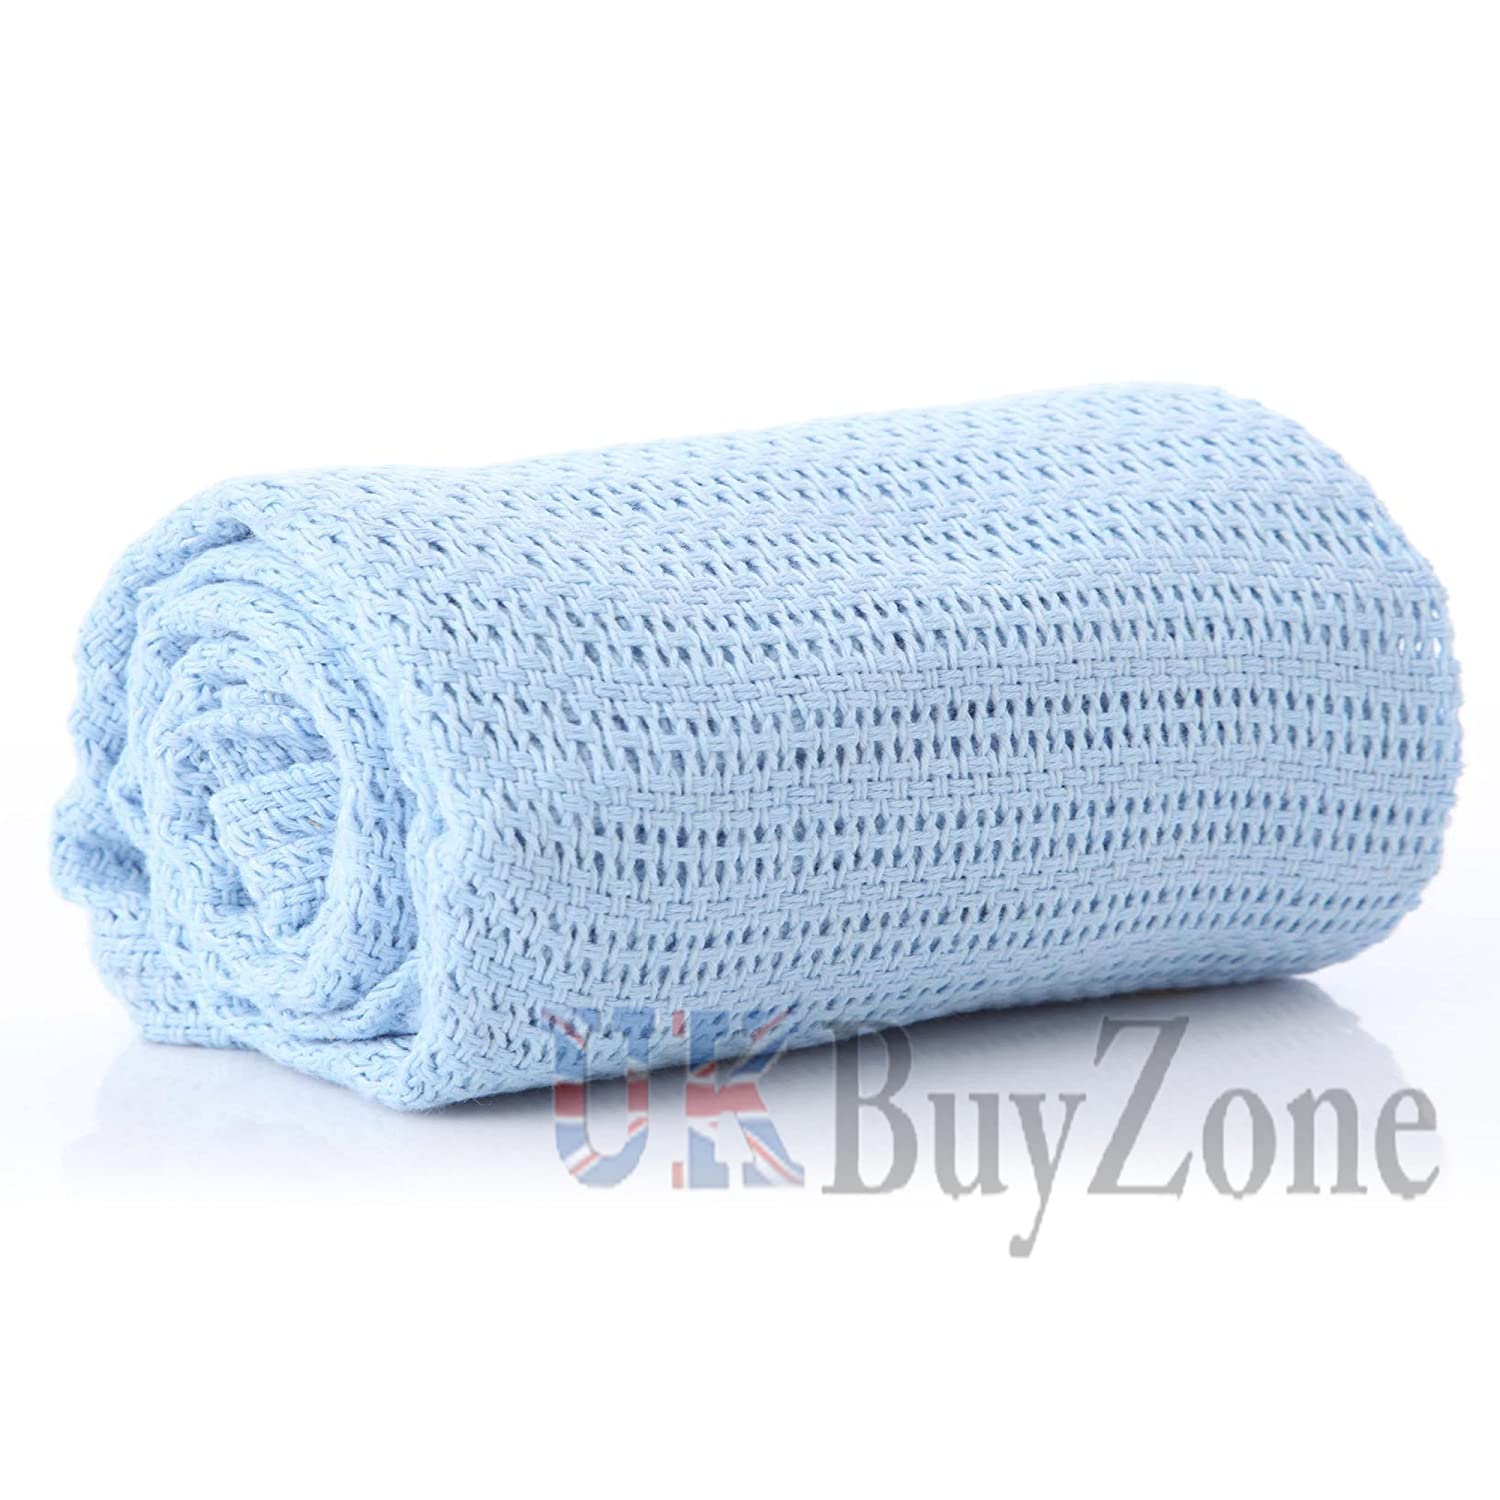 2 Pack Quality 100/% Baby Cotton Cellular Blankets Cot Bed Large Size 86 x 112cm